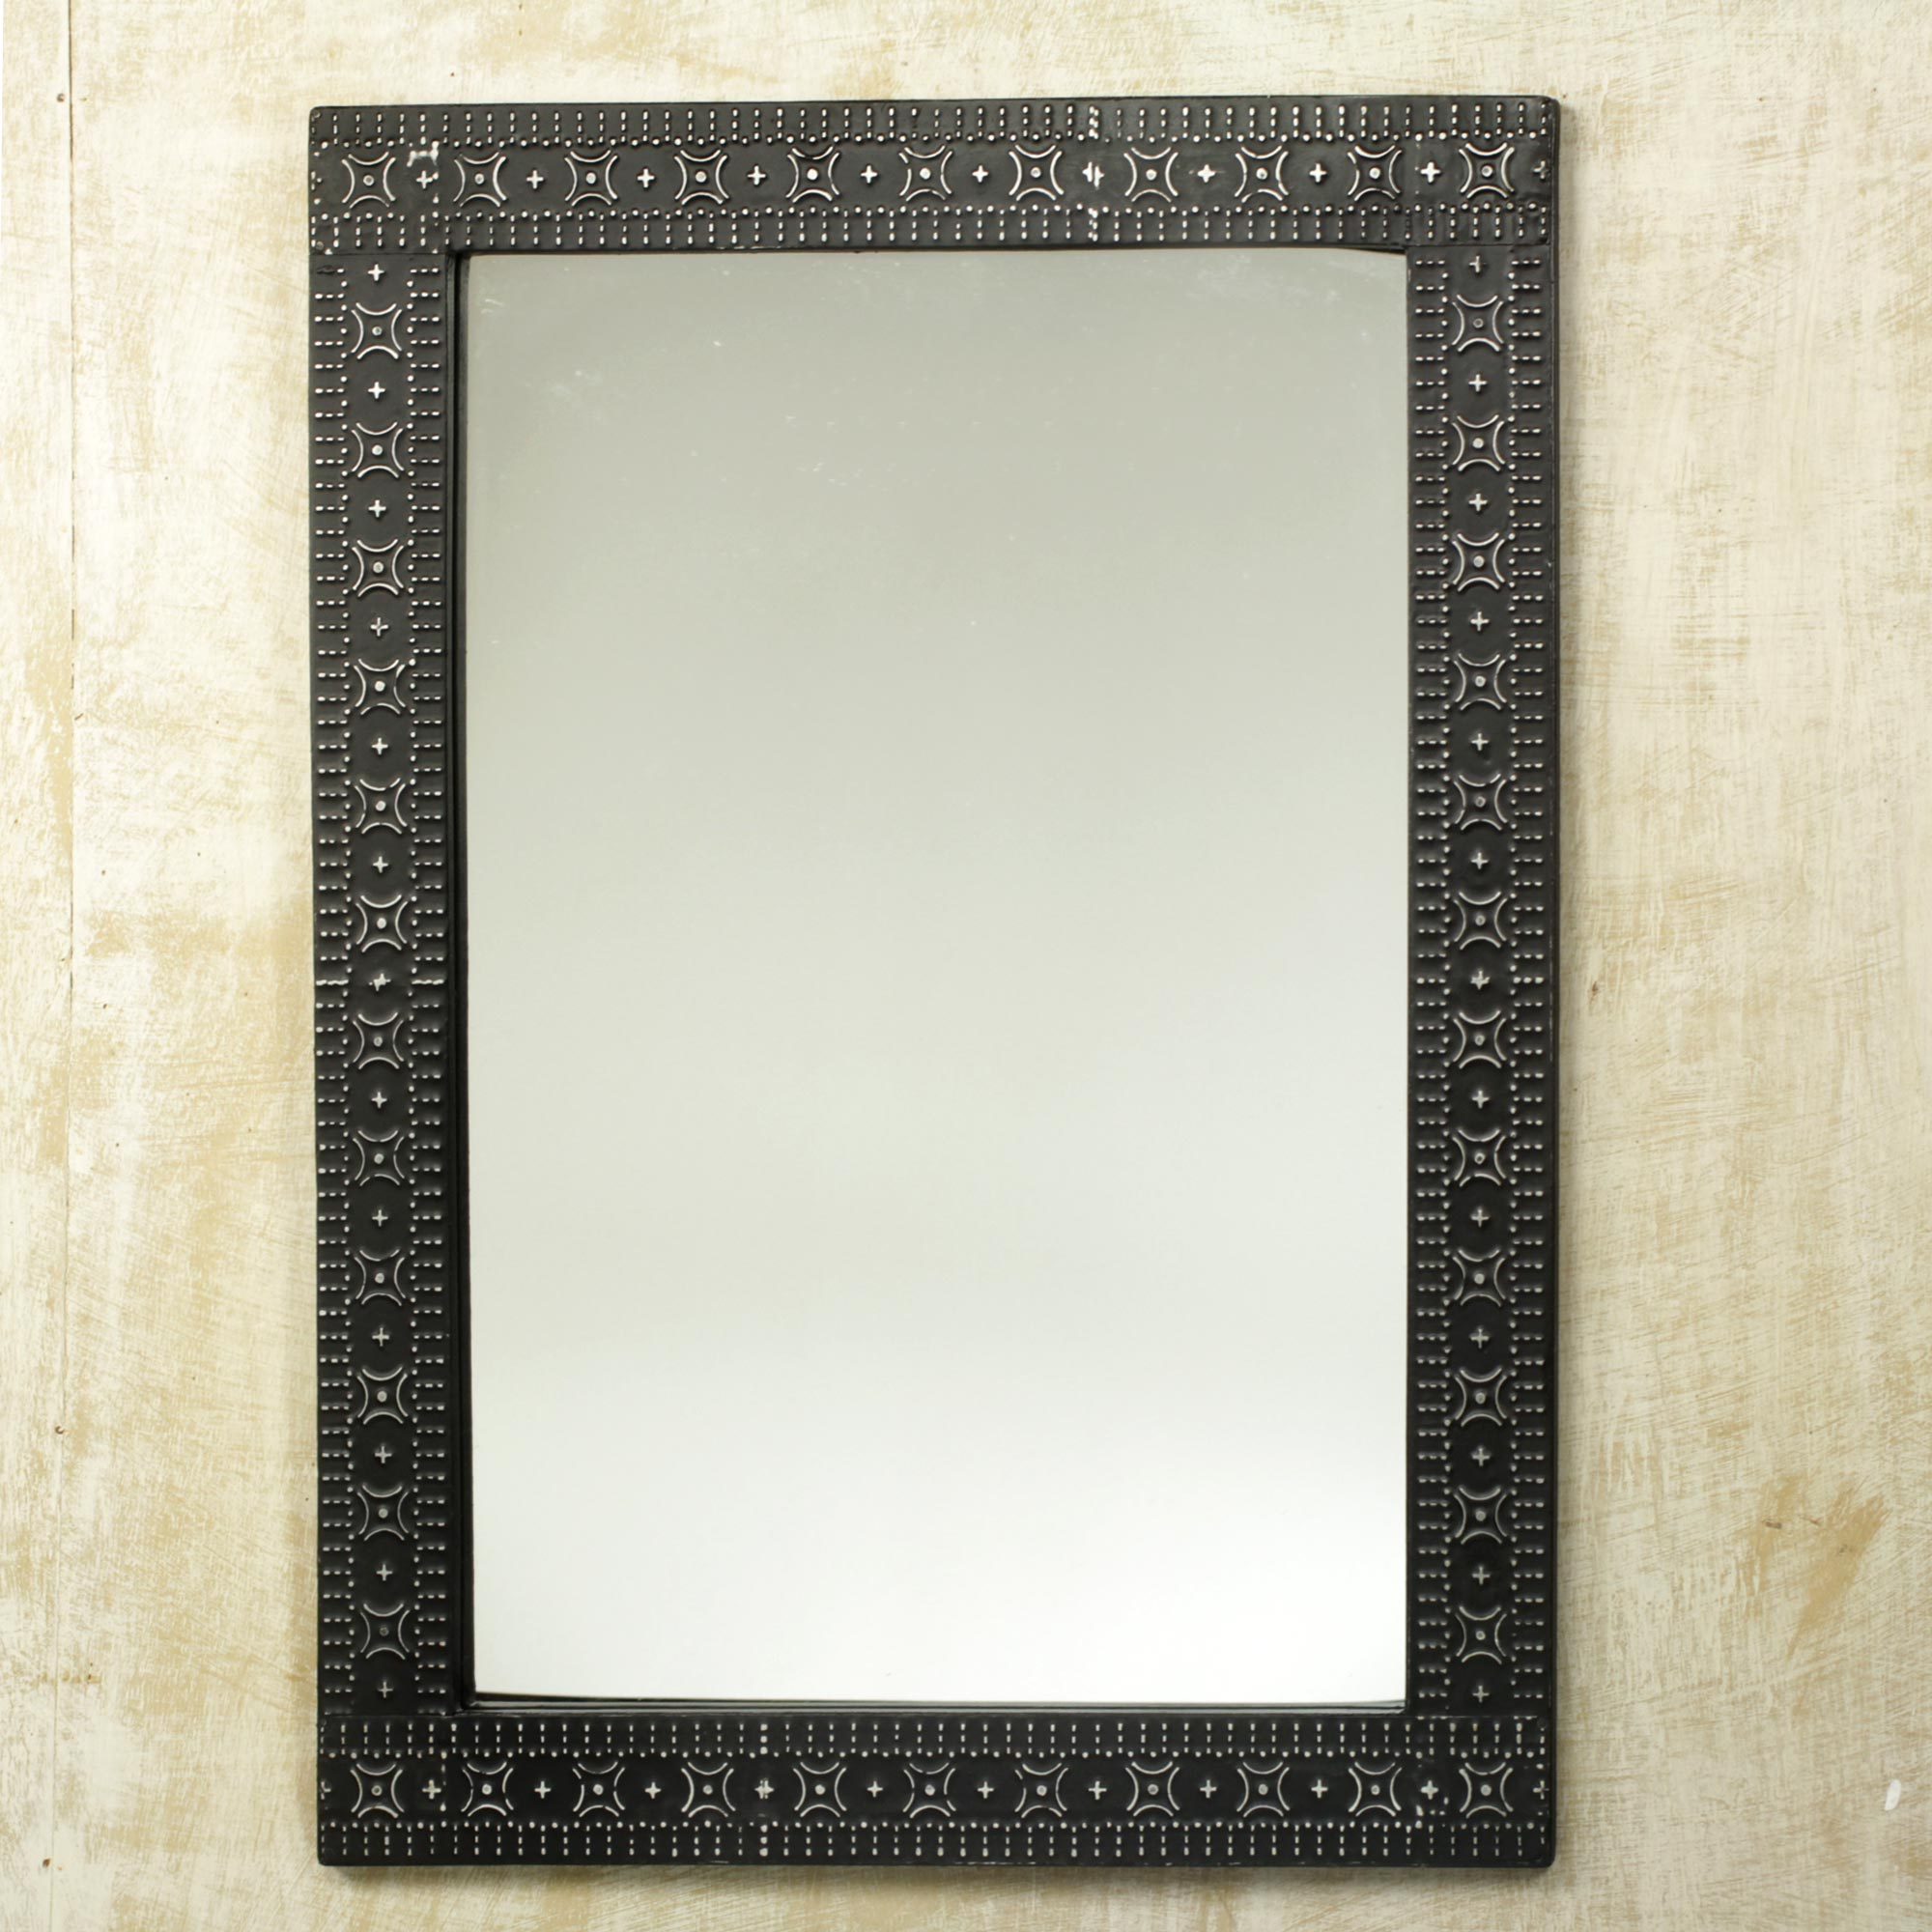 Contemporary Wood and Aluminum Mirror hand crafted, 'African Princess' Decorating a Small Space with Mirrors